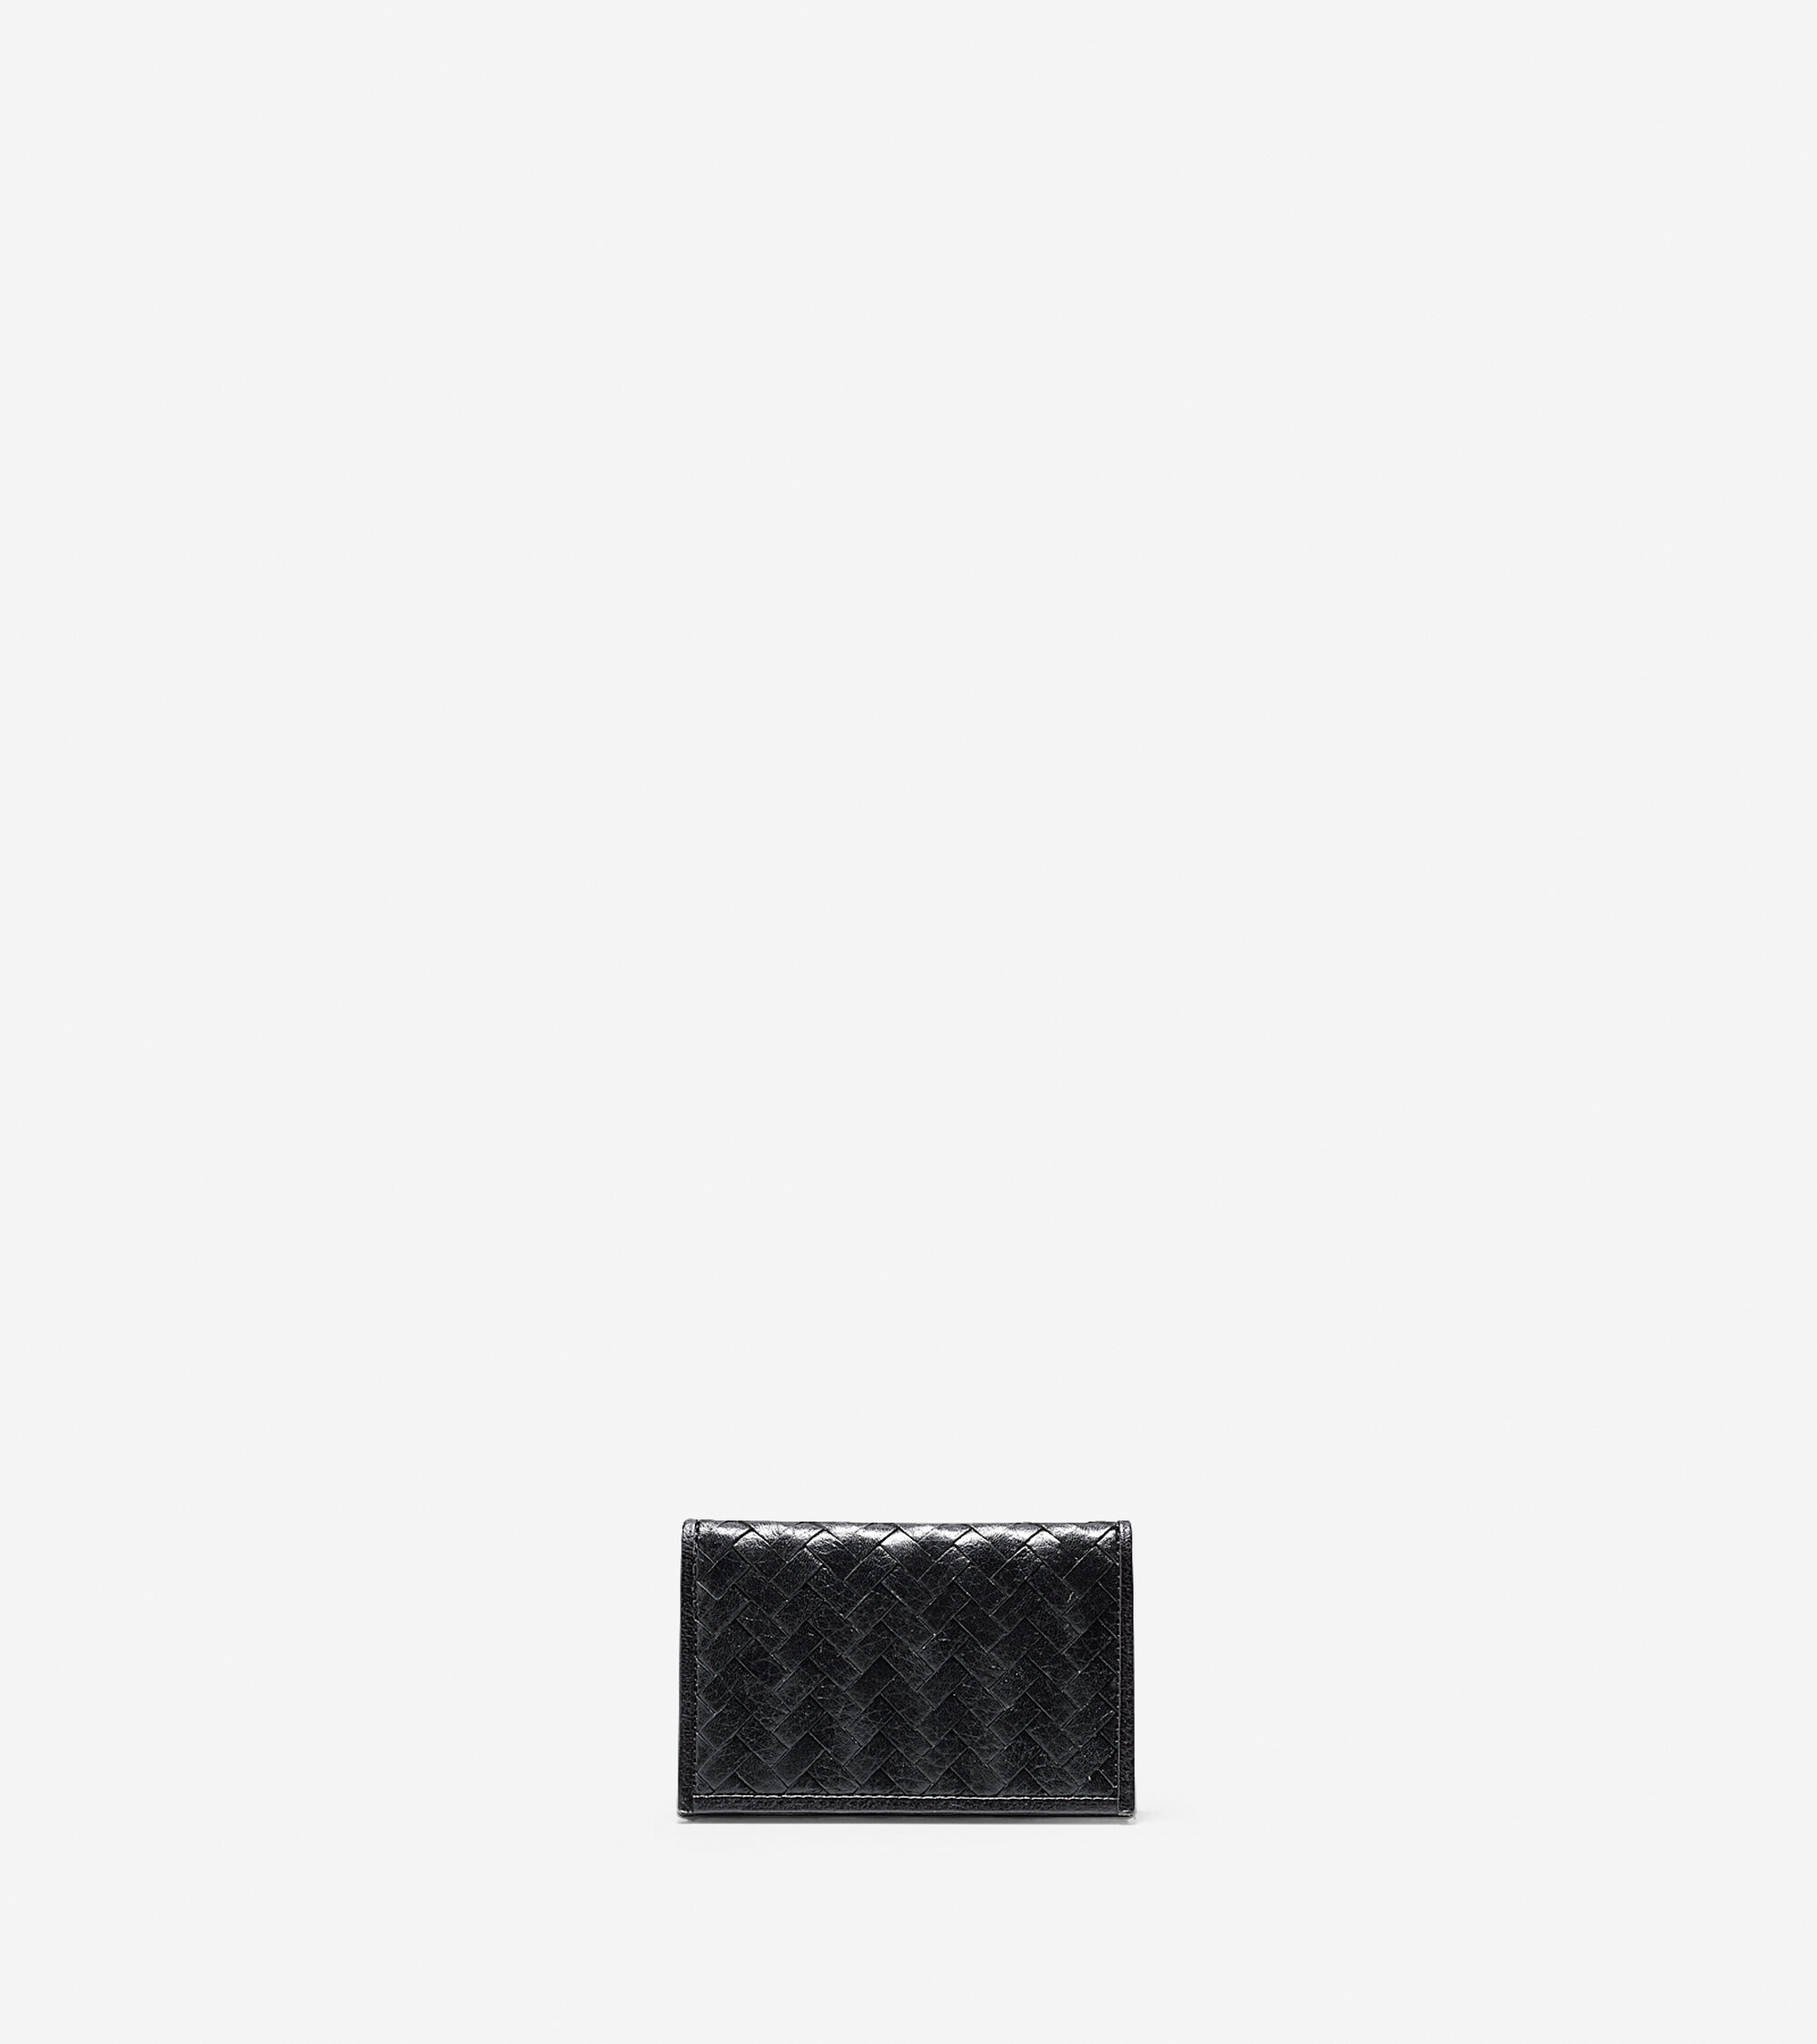 Accessories > Chamberlain Credit Card Fold Wallet